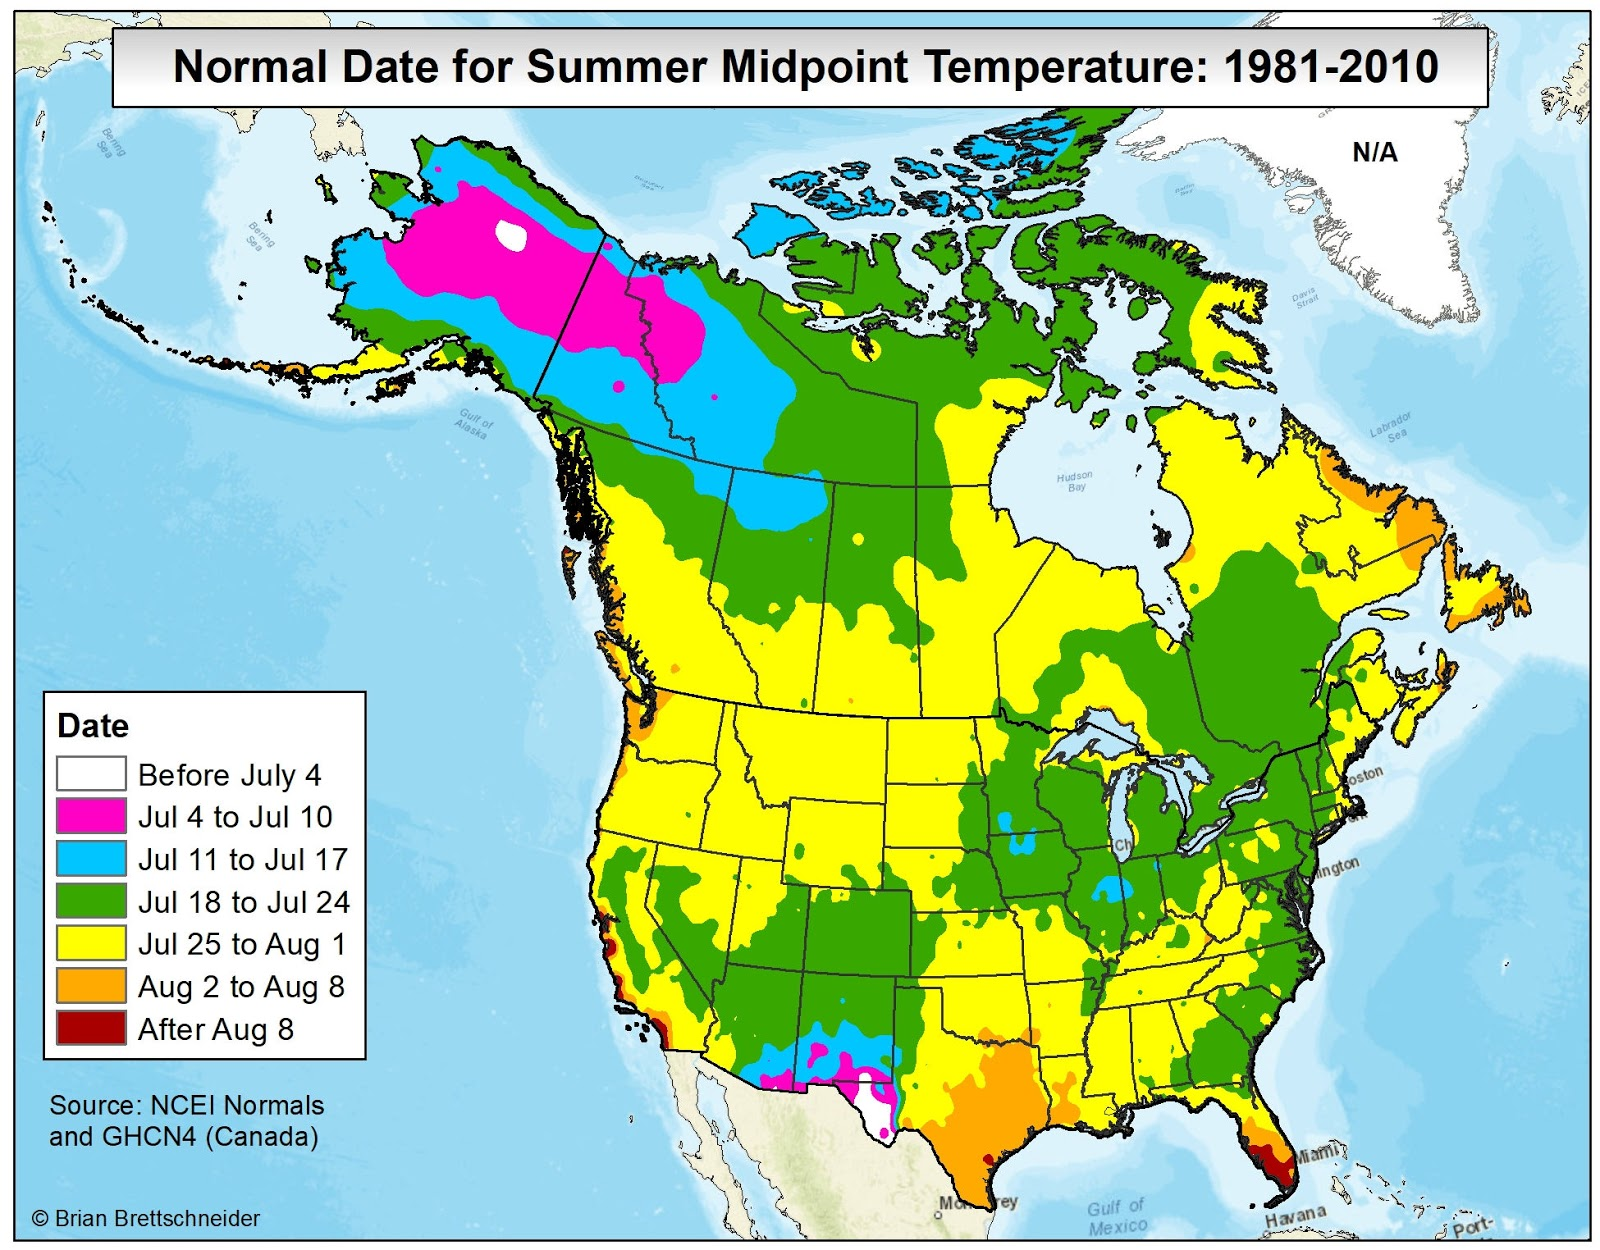 Brian Bs Climate Blog Average Annual High Temperature Vs - Us summer temperature map